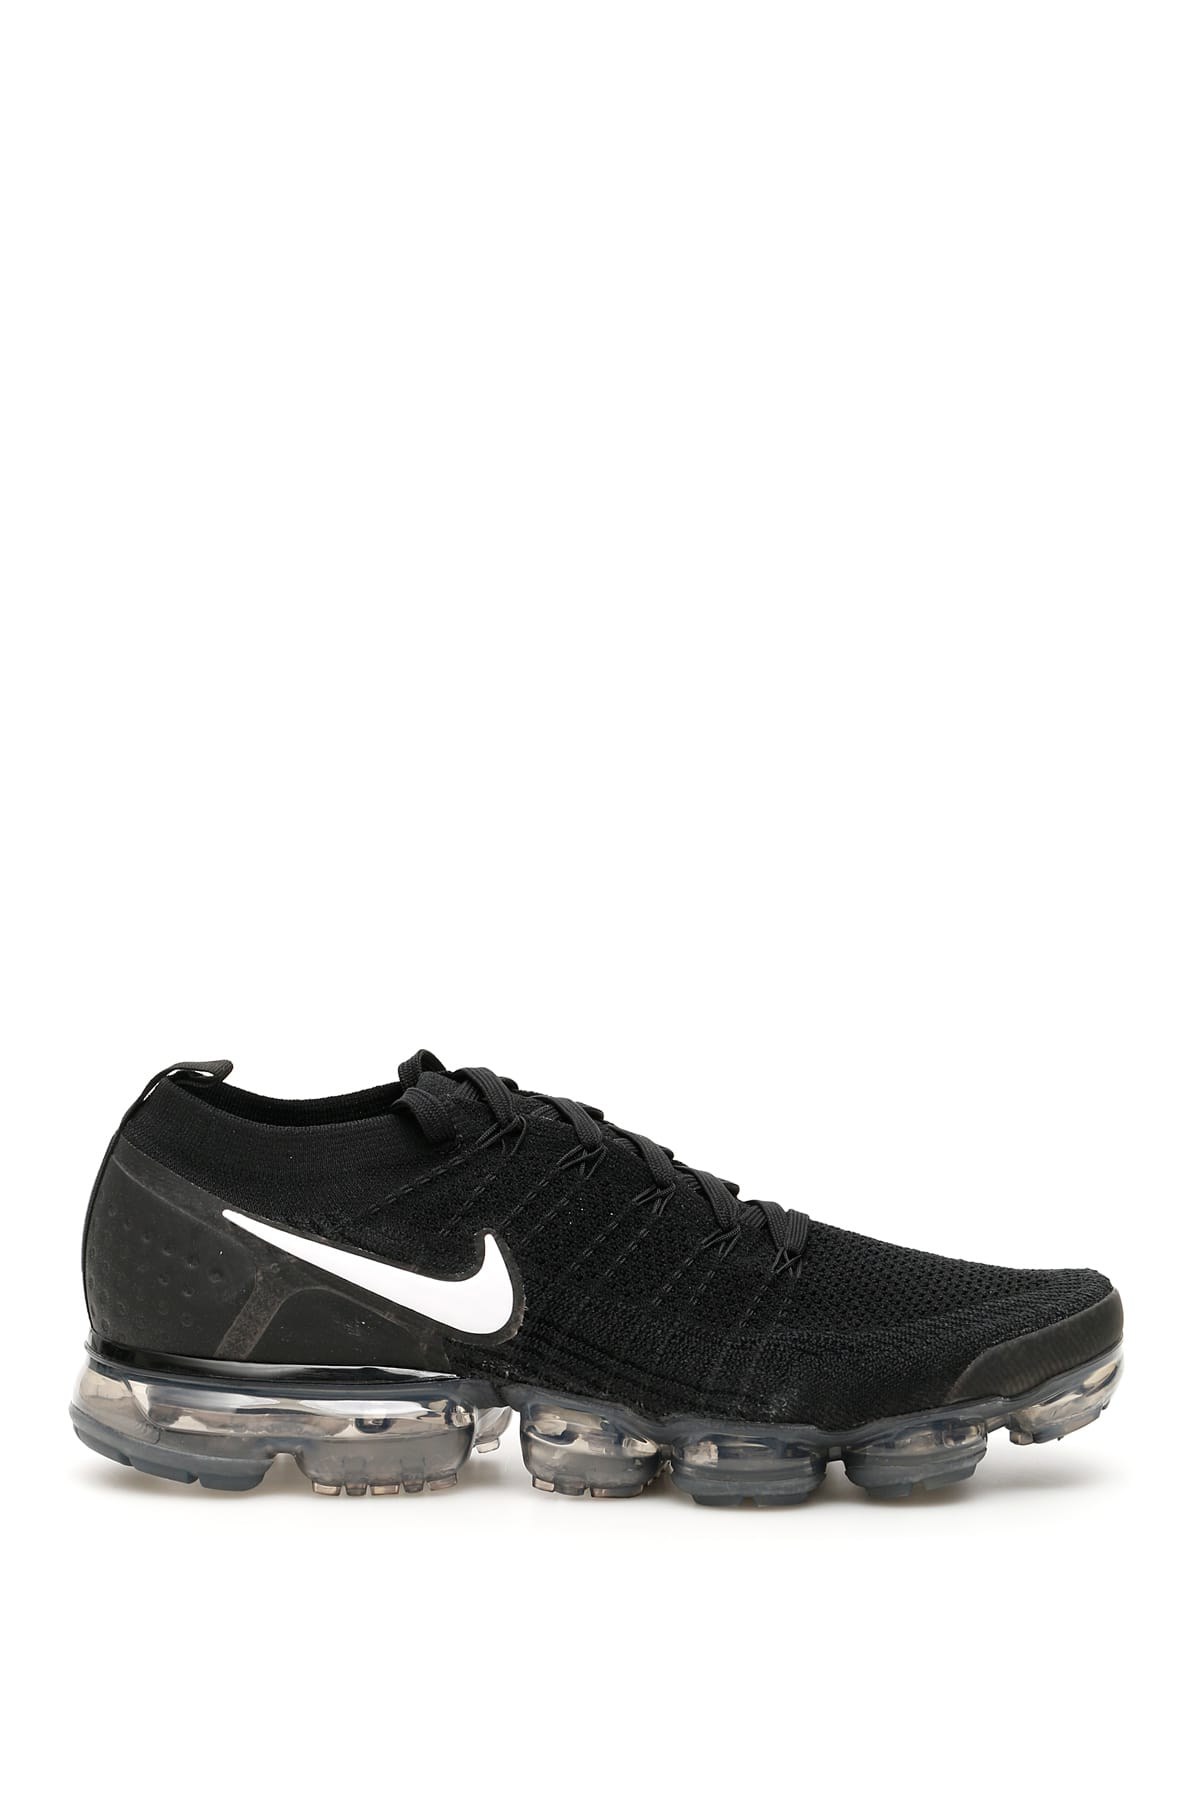 new product a977c b73f7 Nike Air Vapormax Flyknit 2 Sneakers